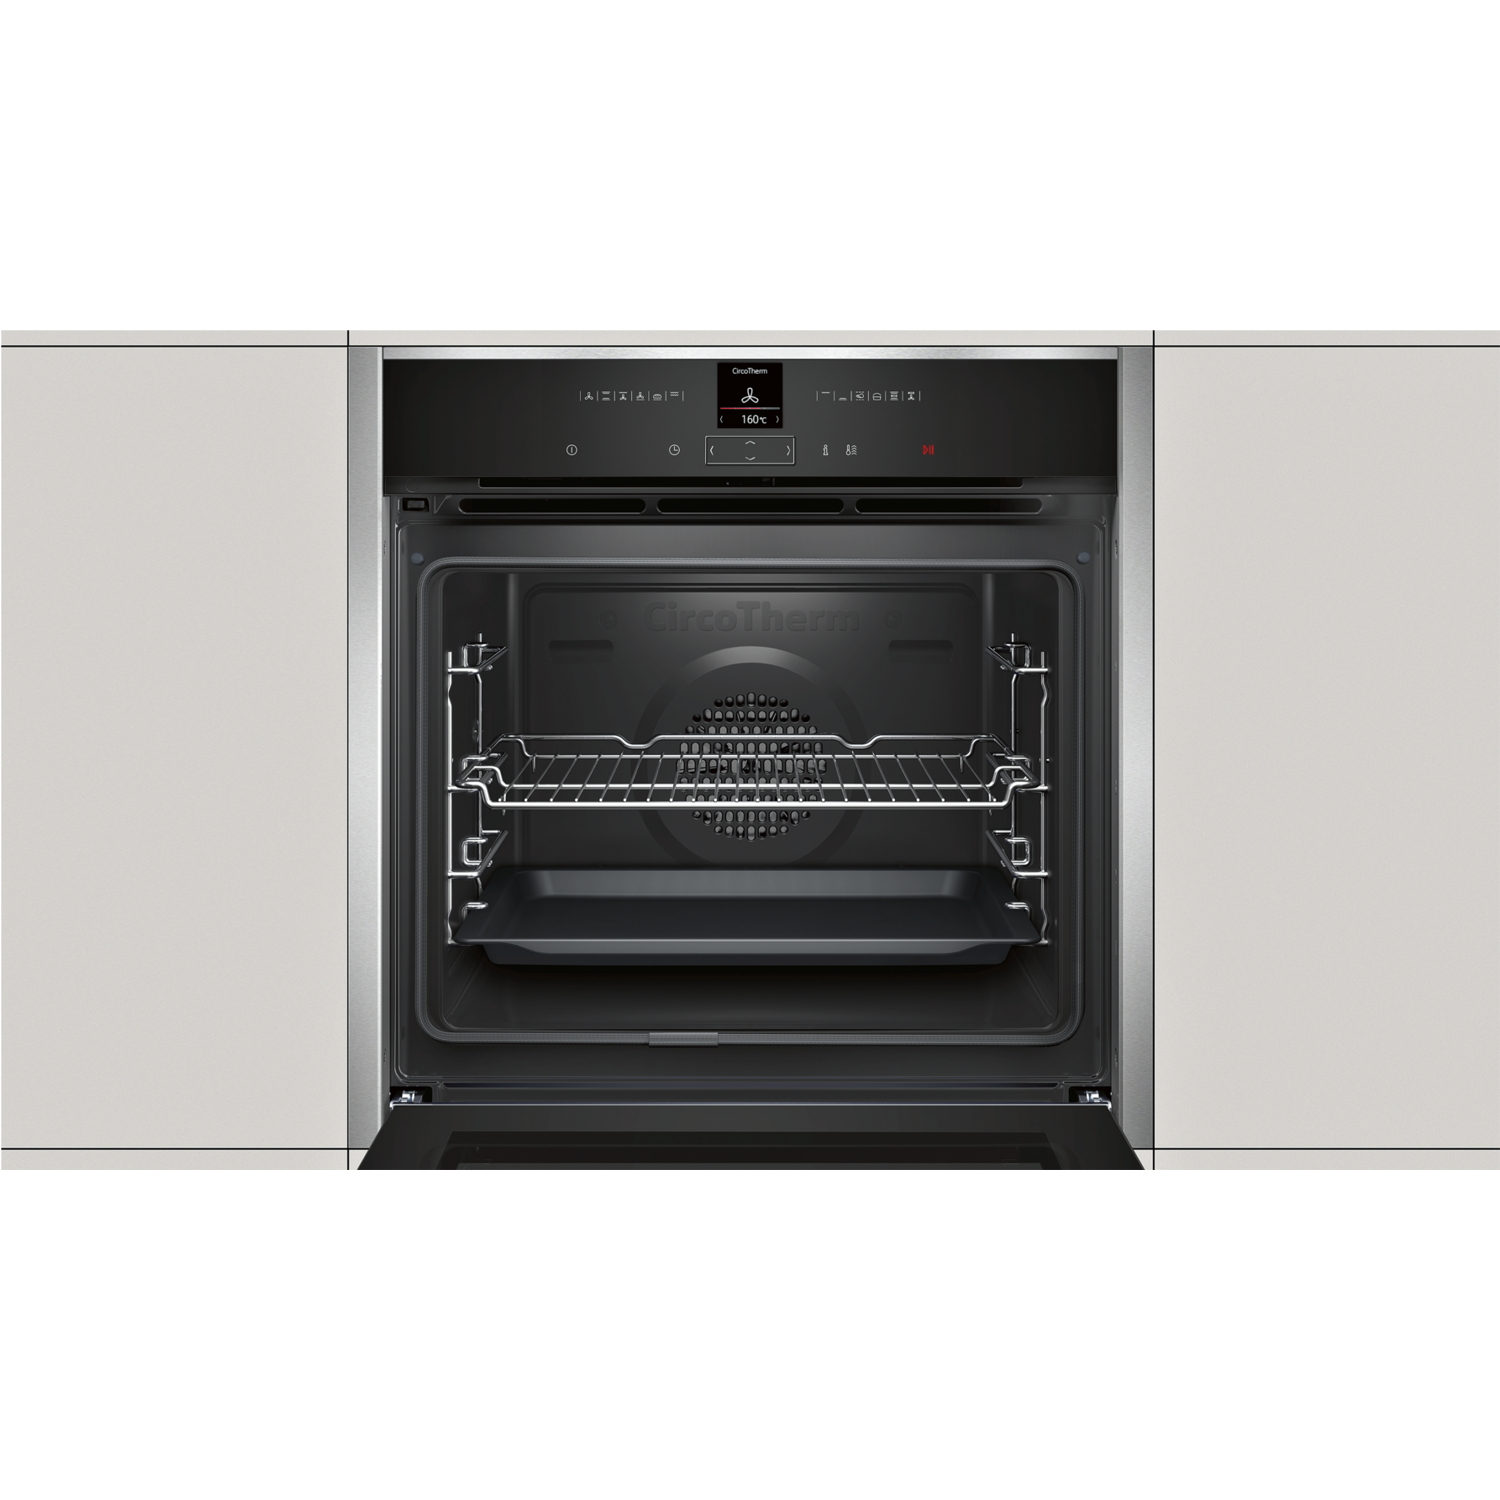 Neff B27cr22n1b N70 Electric Built In Single Oven With Pyrolytic Cleaning Stainless Steel